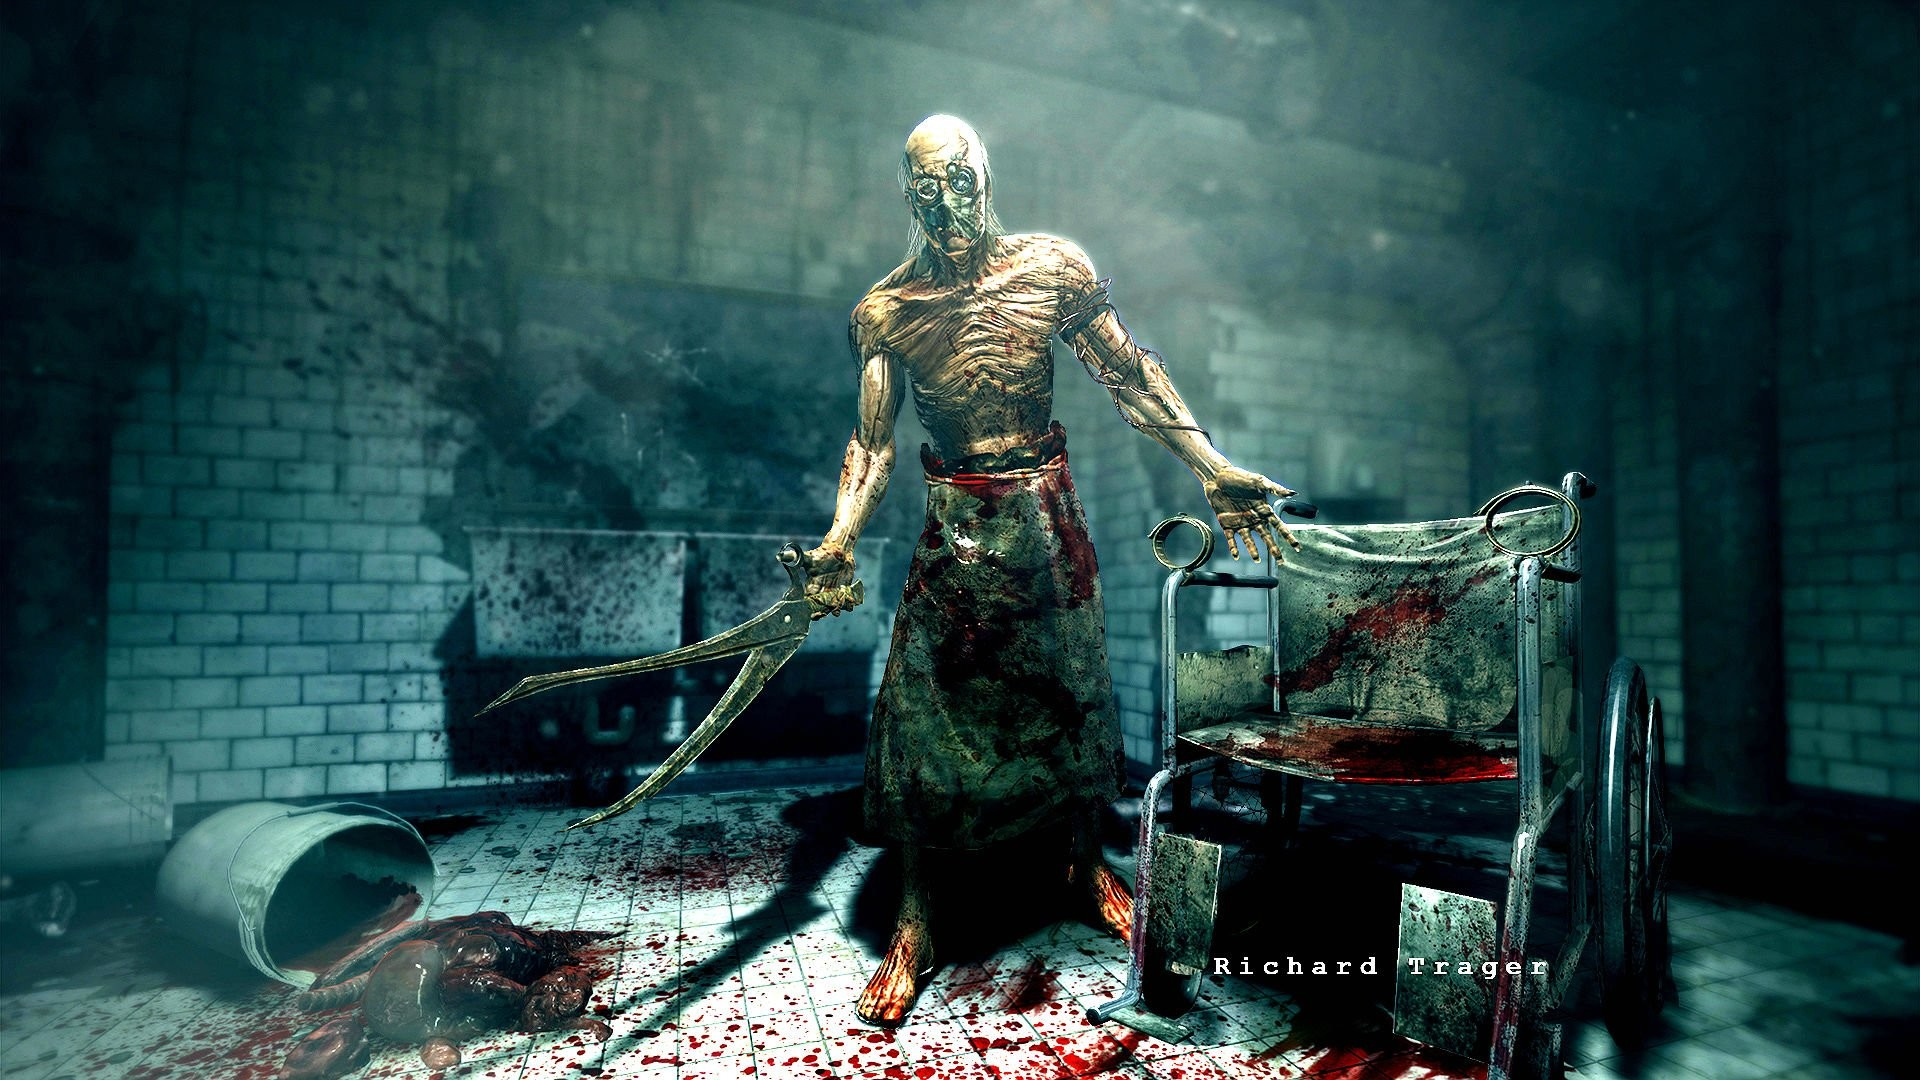 1920x1080 Outlast Wallpapers, Outlast Wallpapers Free Download - 46+ Nice Pics